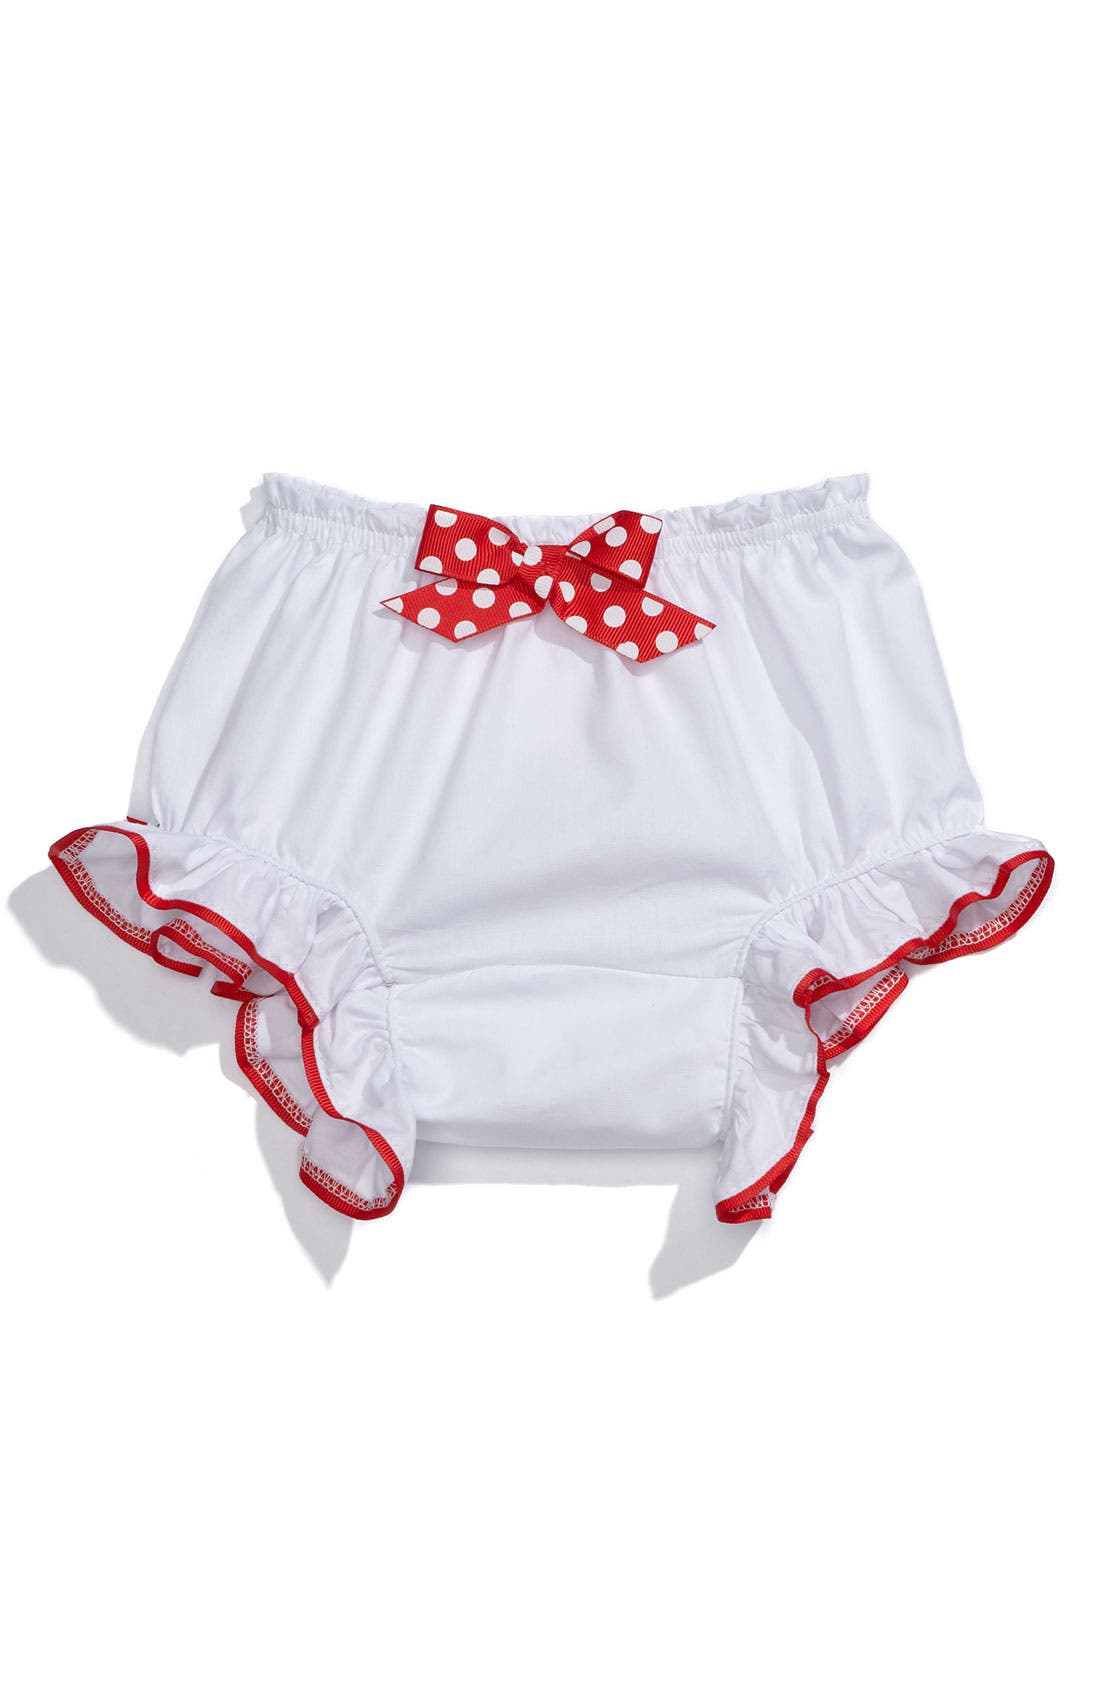 Alternate Image 2  - Mud Pie 'I Love Santa' Bloomers (Infant)